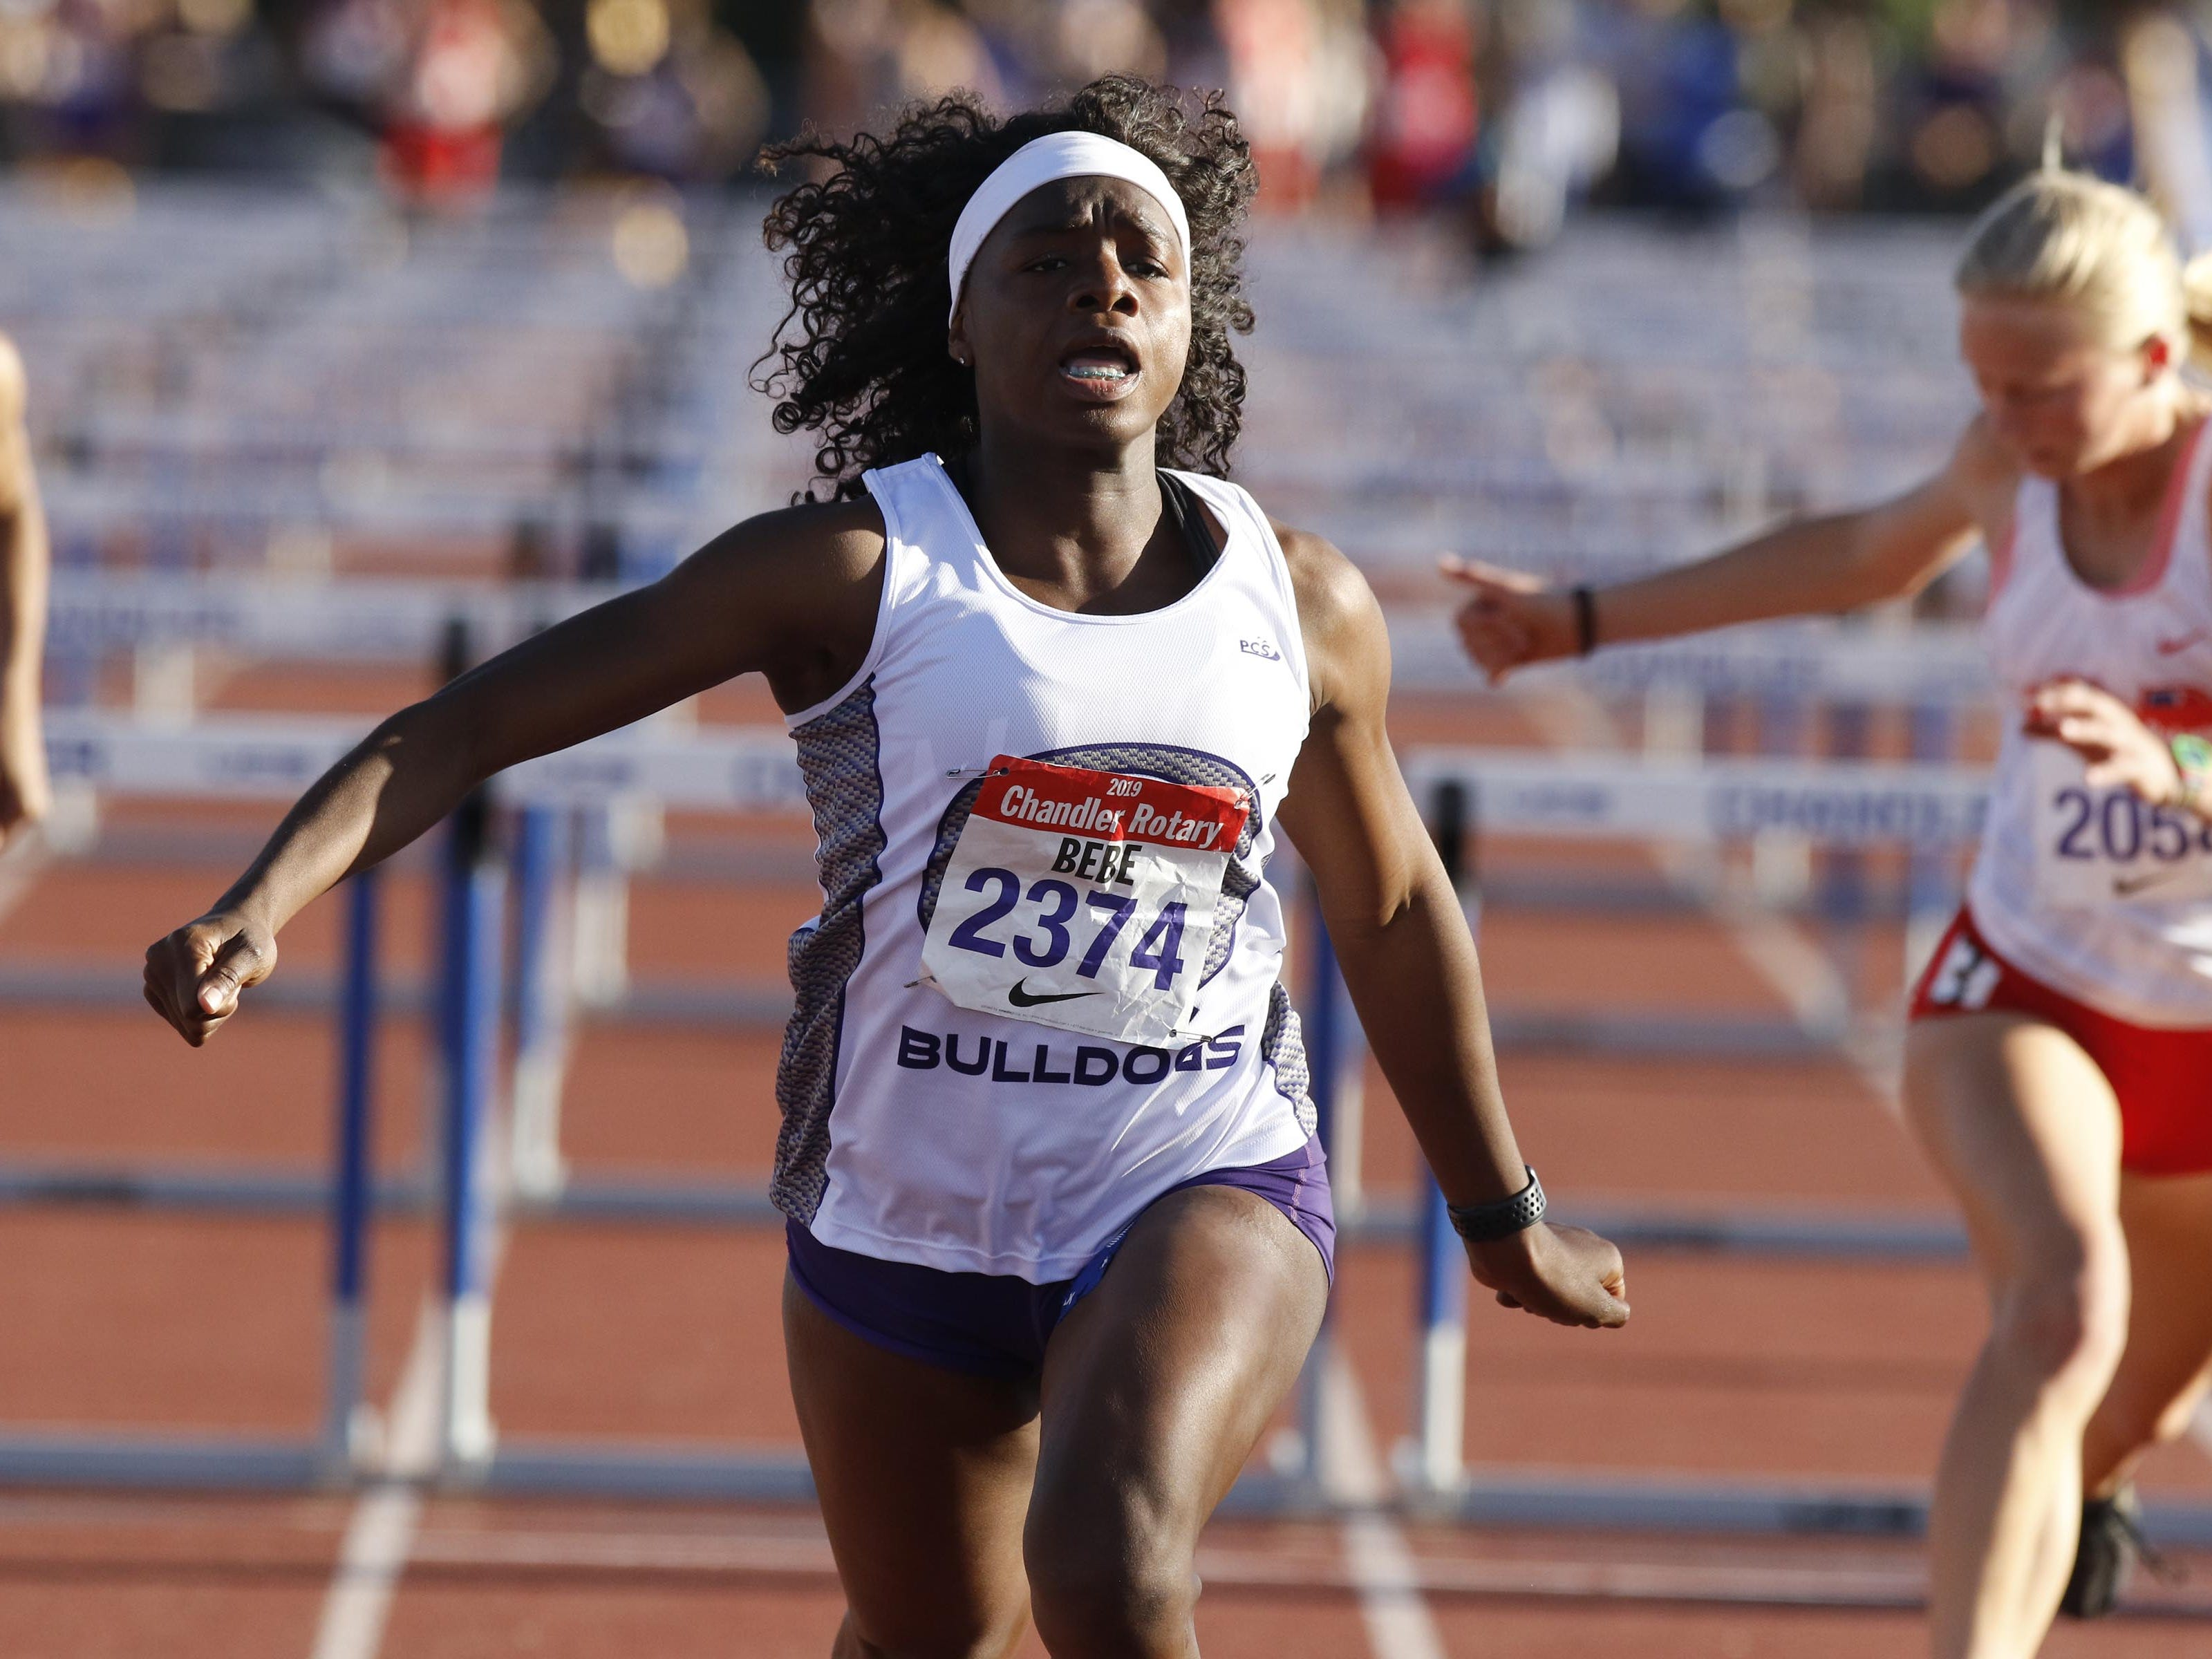 Queen Creek's Myreanna Bebe luges at the finish of the  110 Hurdles which she won with a time of 13.81 during the 79th Annual Nike Chandler Rotary Invitational  March 23, 2019.